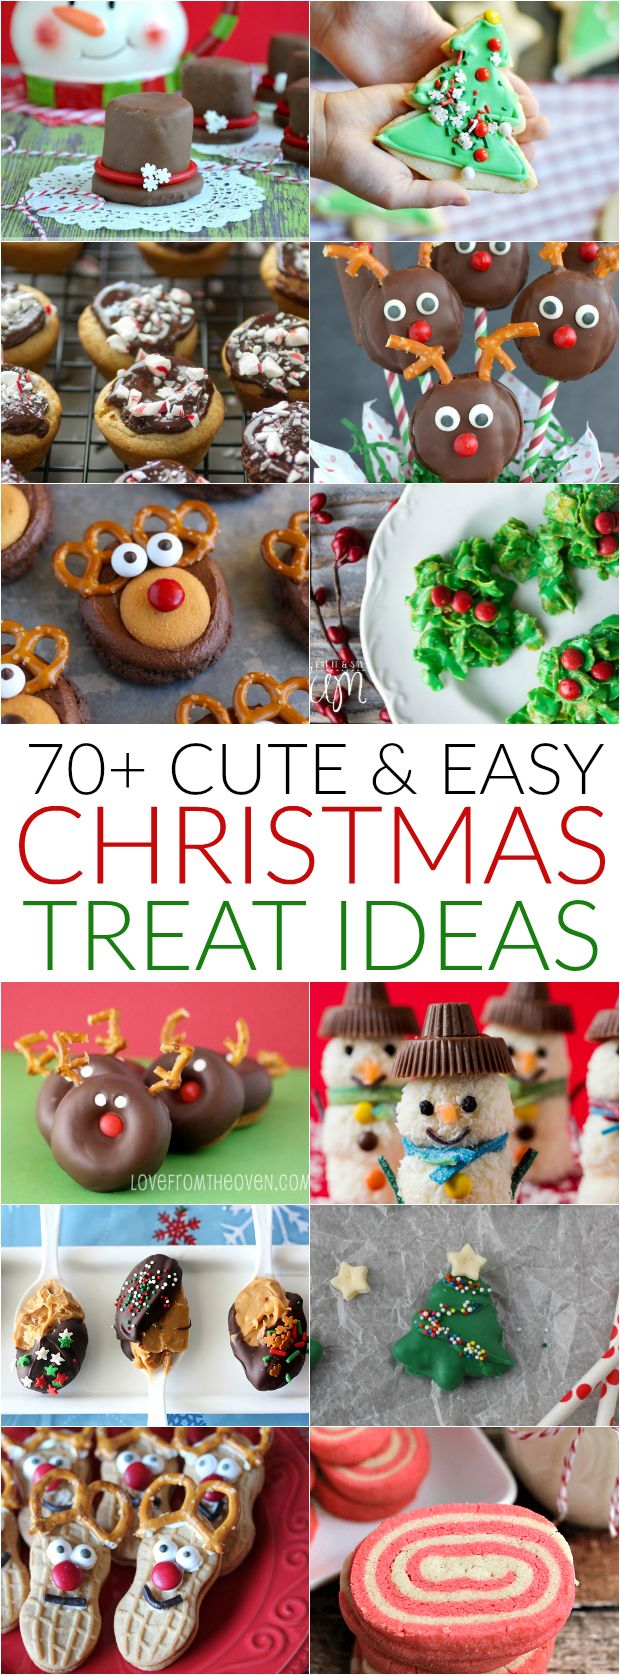 70+ Cute & Easy Christmas Treats